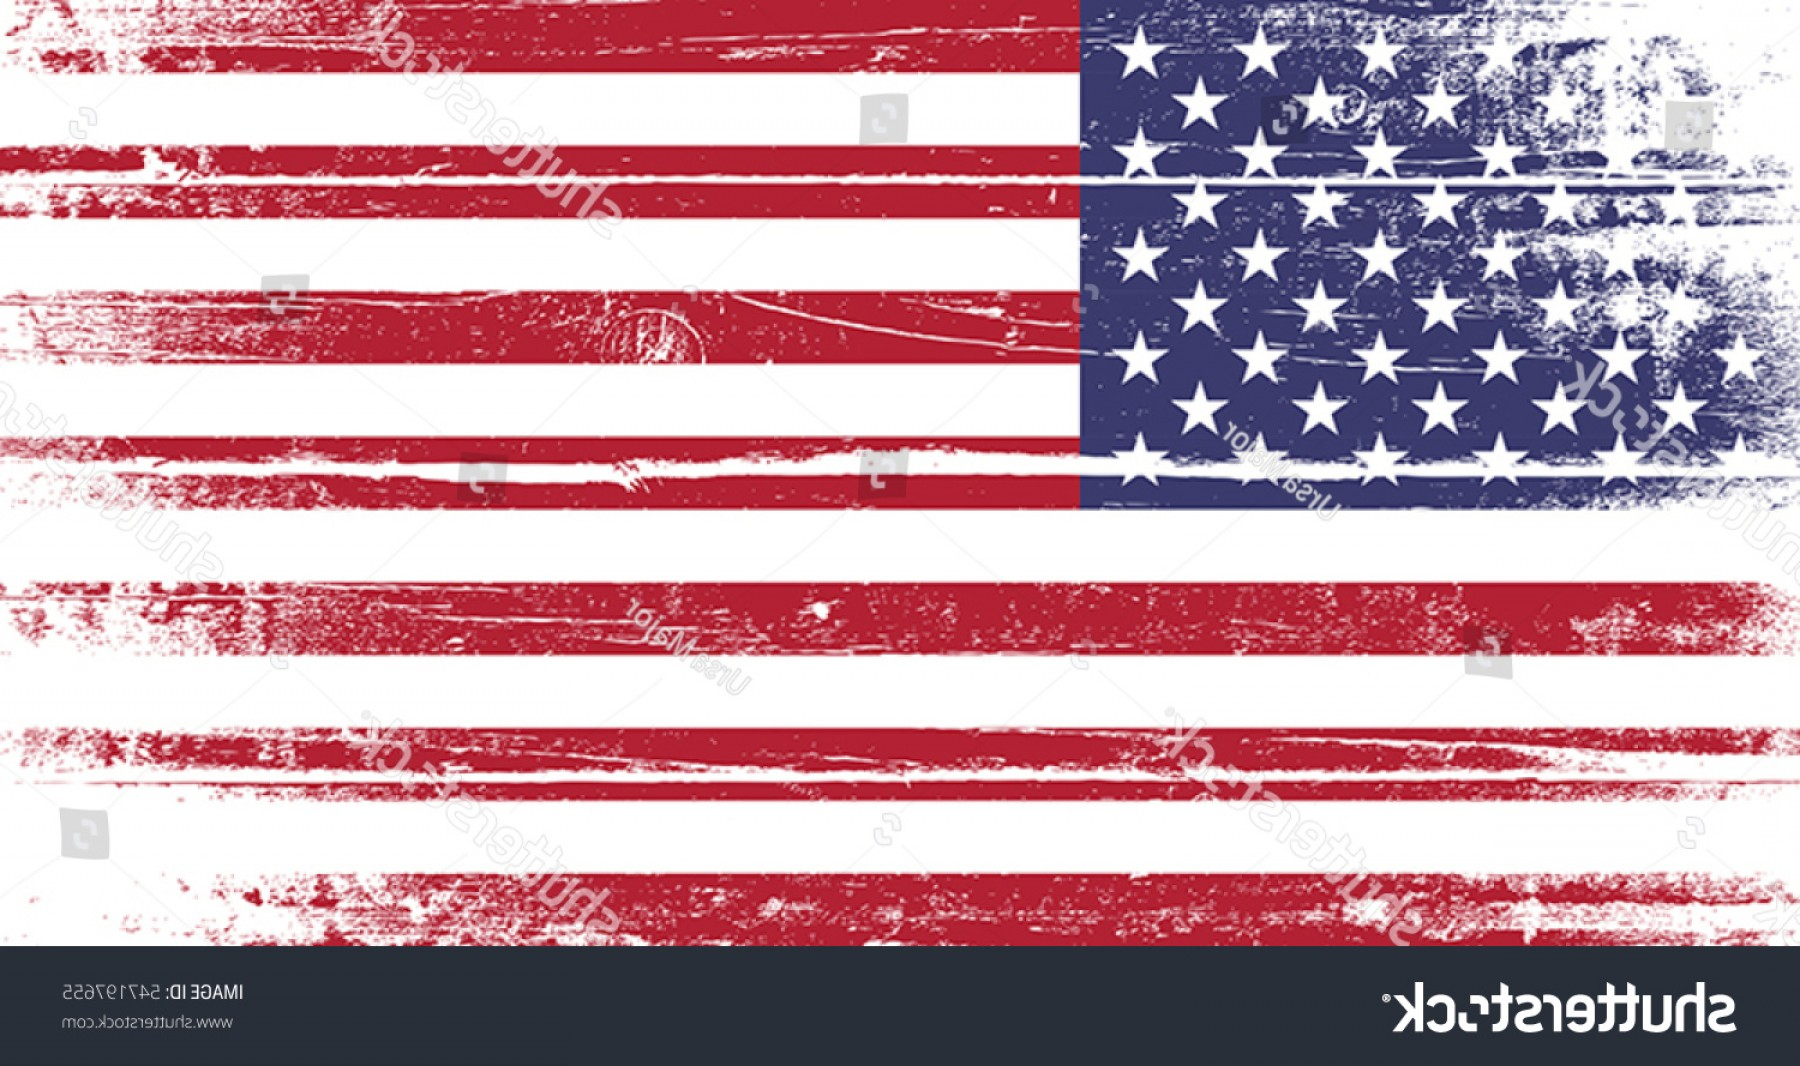 Distressed Flag Vector Digital: Flag United States America Old Dyed